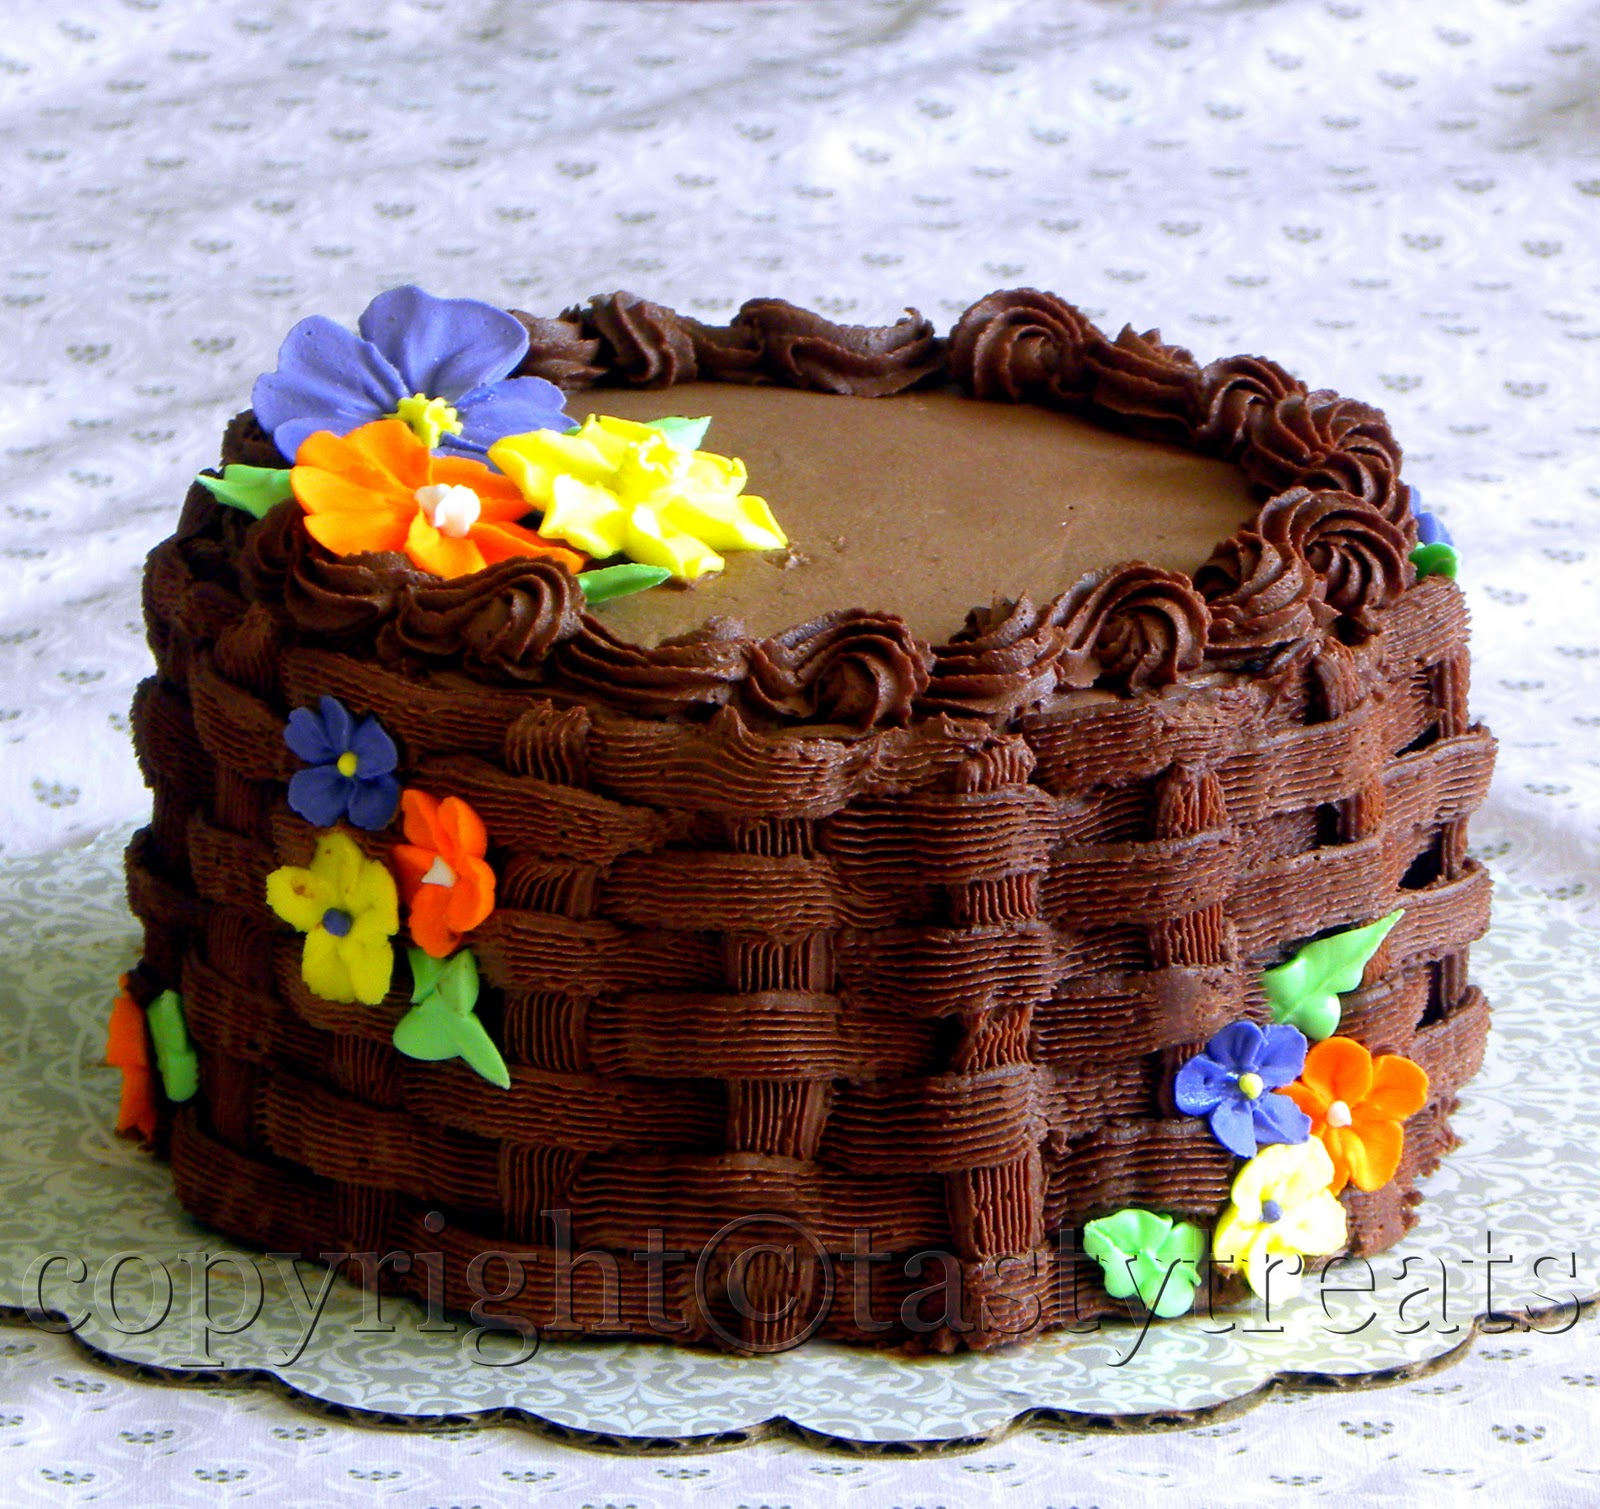 Eggless Cake Decoration At Home : Tasty Treats: Eggless Chocolate Cake with Chocolate ...